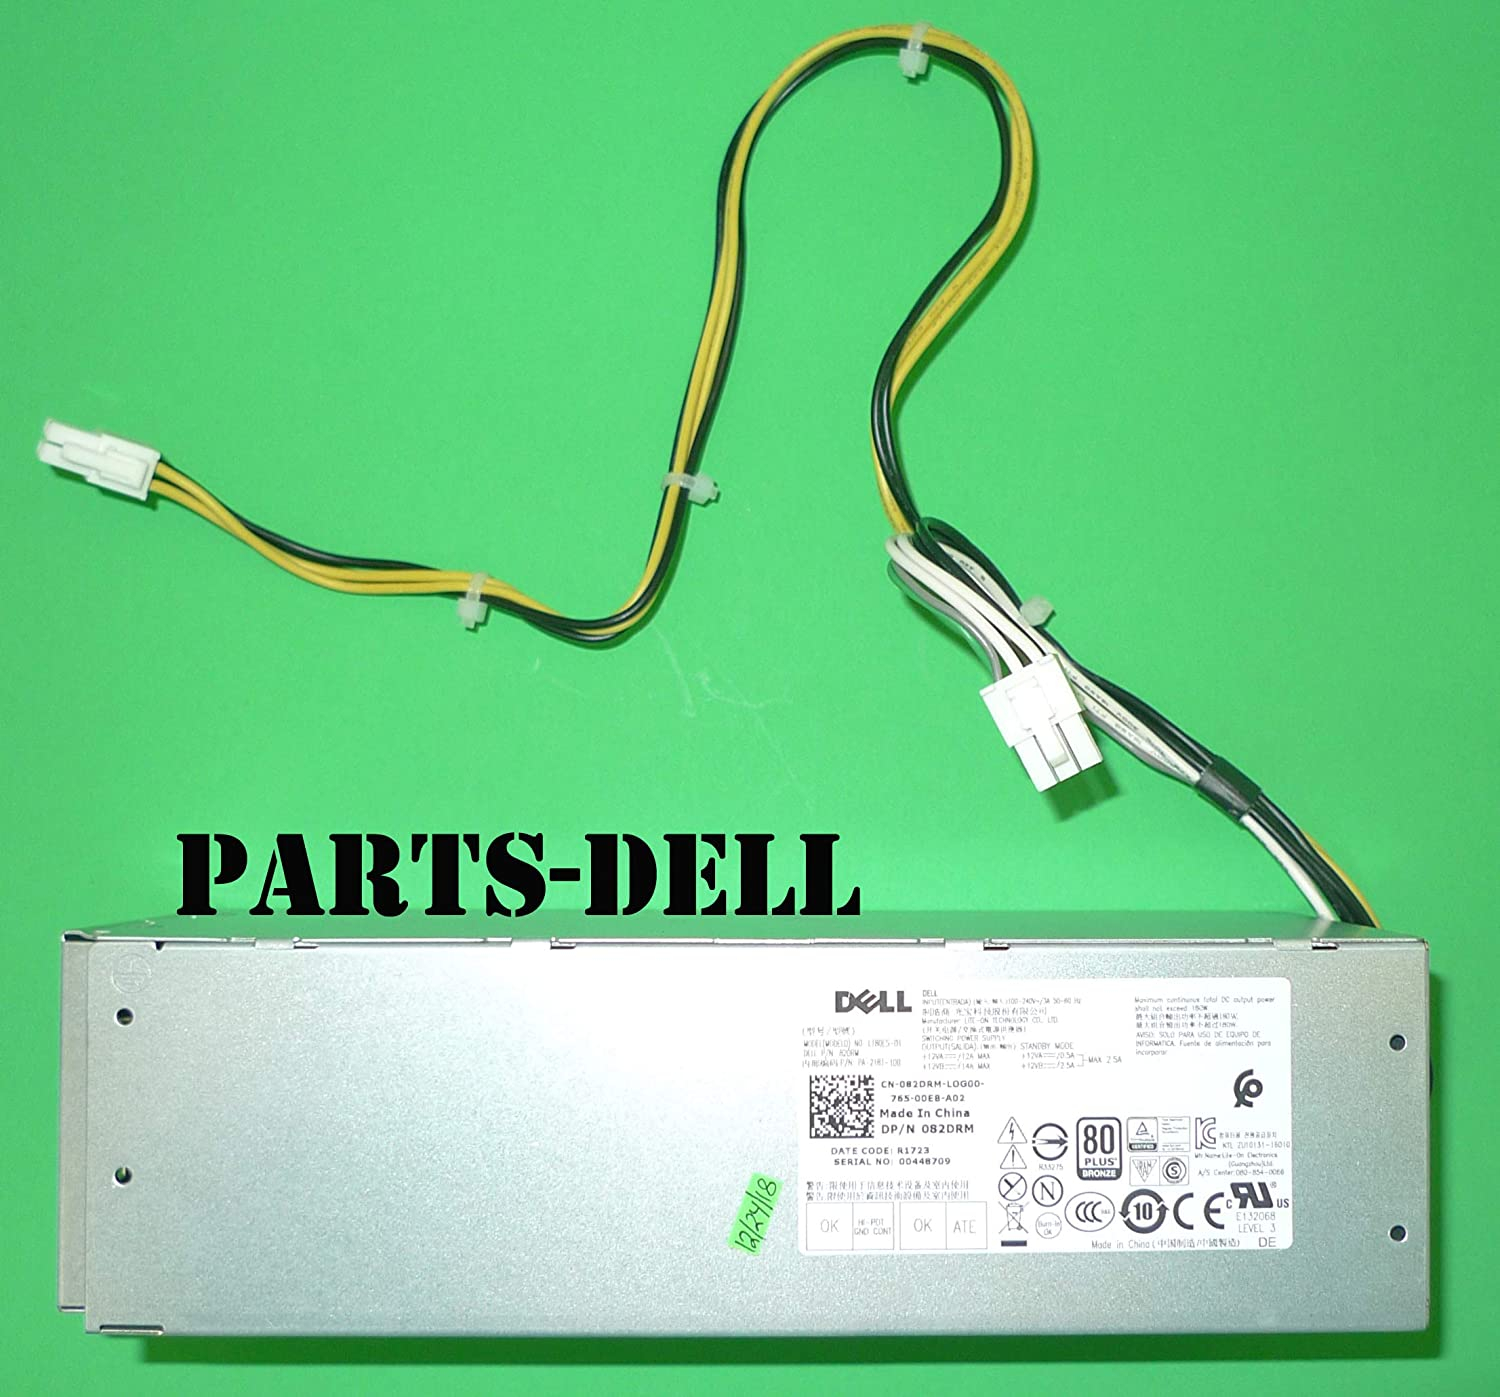 New Genuine PS for Dell Precision 3420 7050 SFF 180W Power Supply 082DRM 82DRM